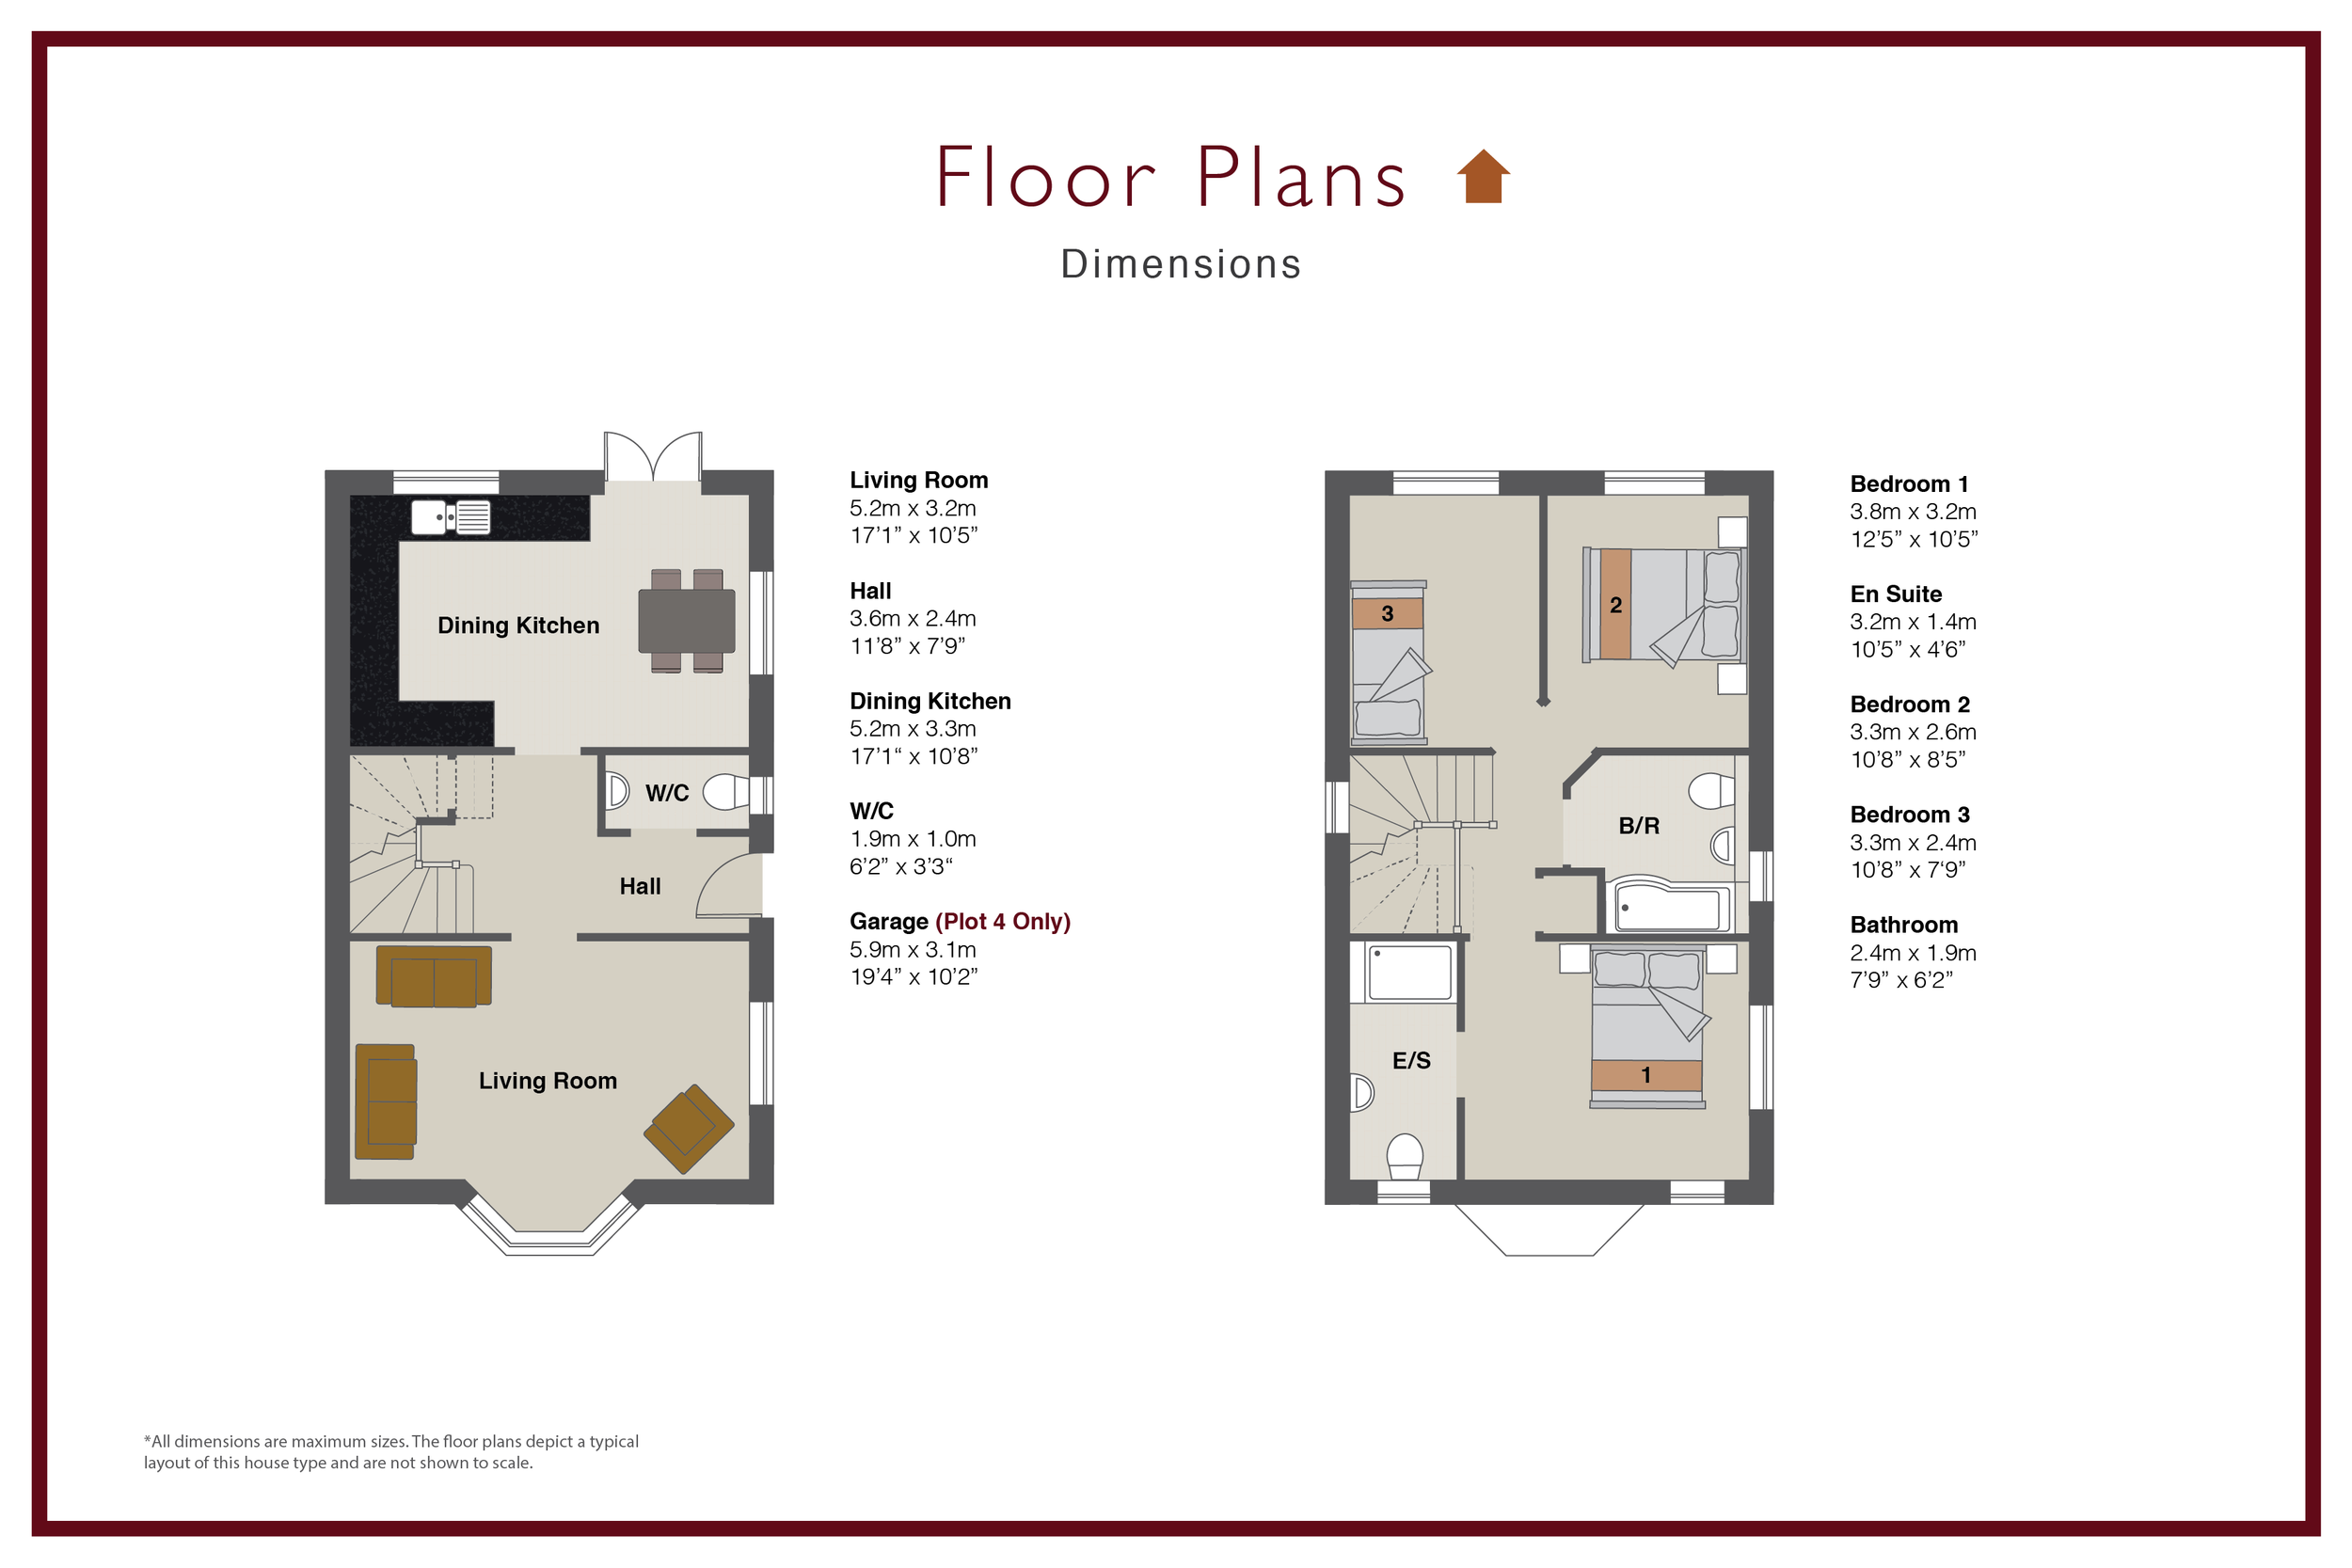 Floorplans_3x2 The Morcott.png